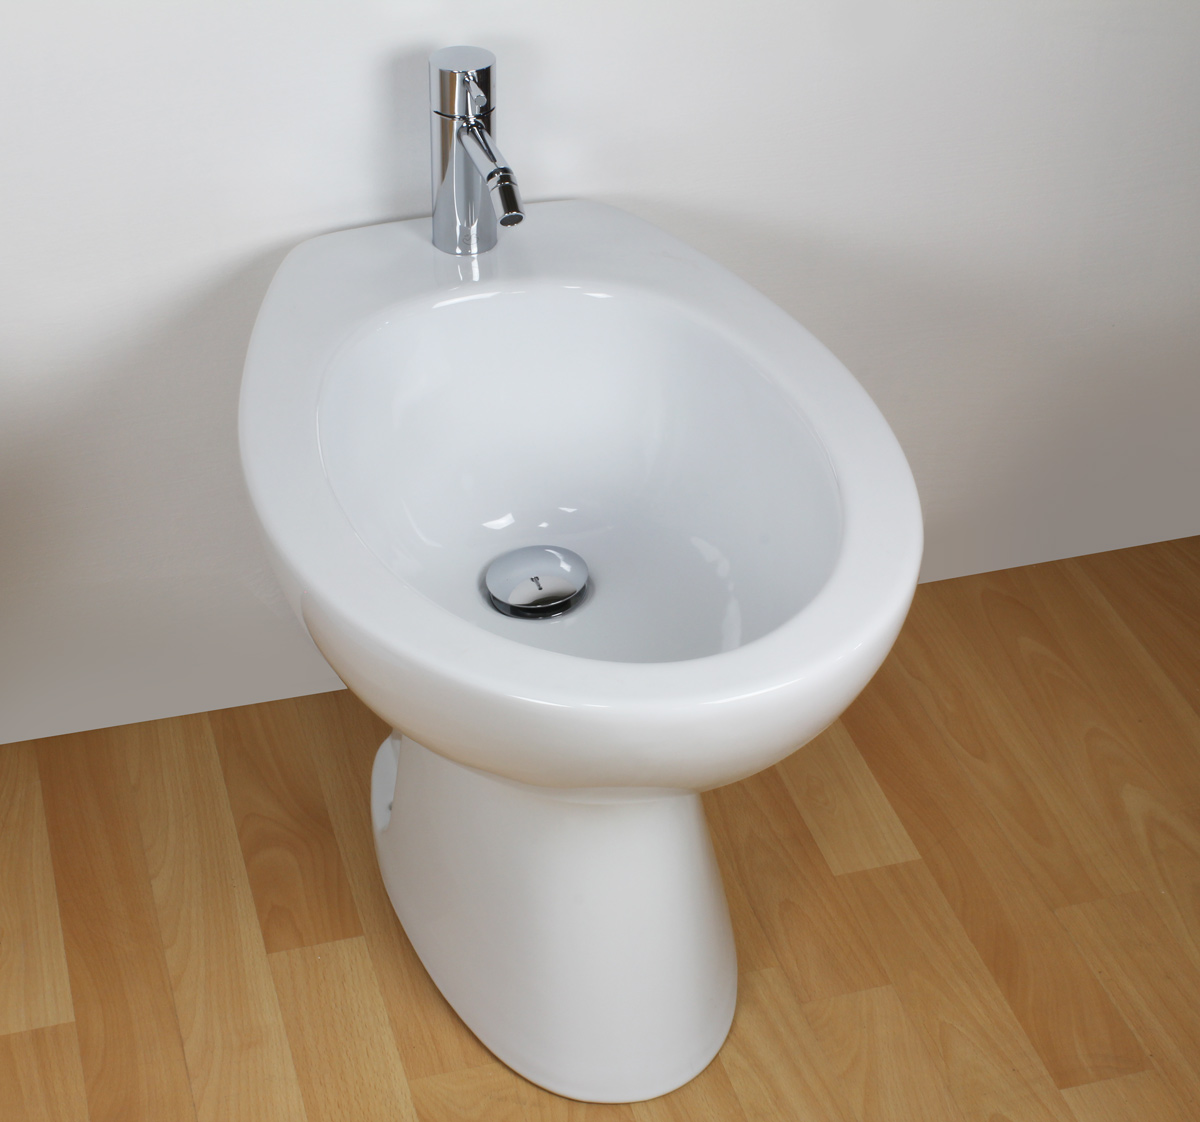 Arredo Bagno Moderno Low Cost : Bagno low cost finest arredo marmo with